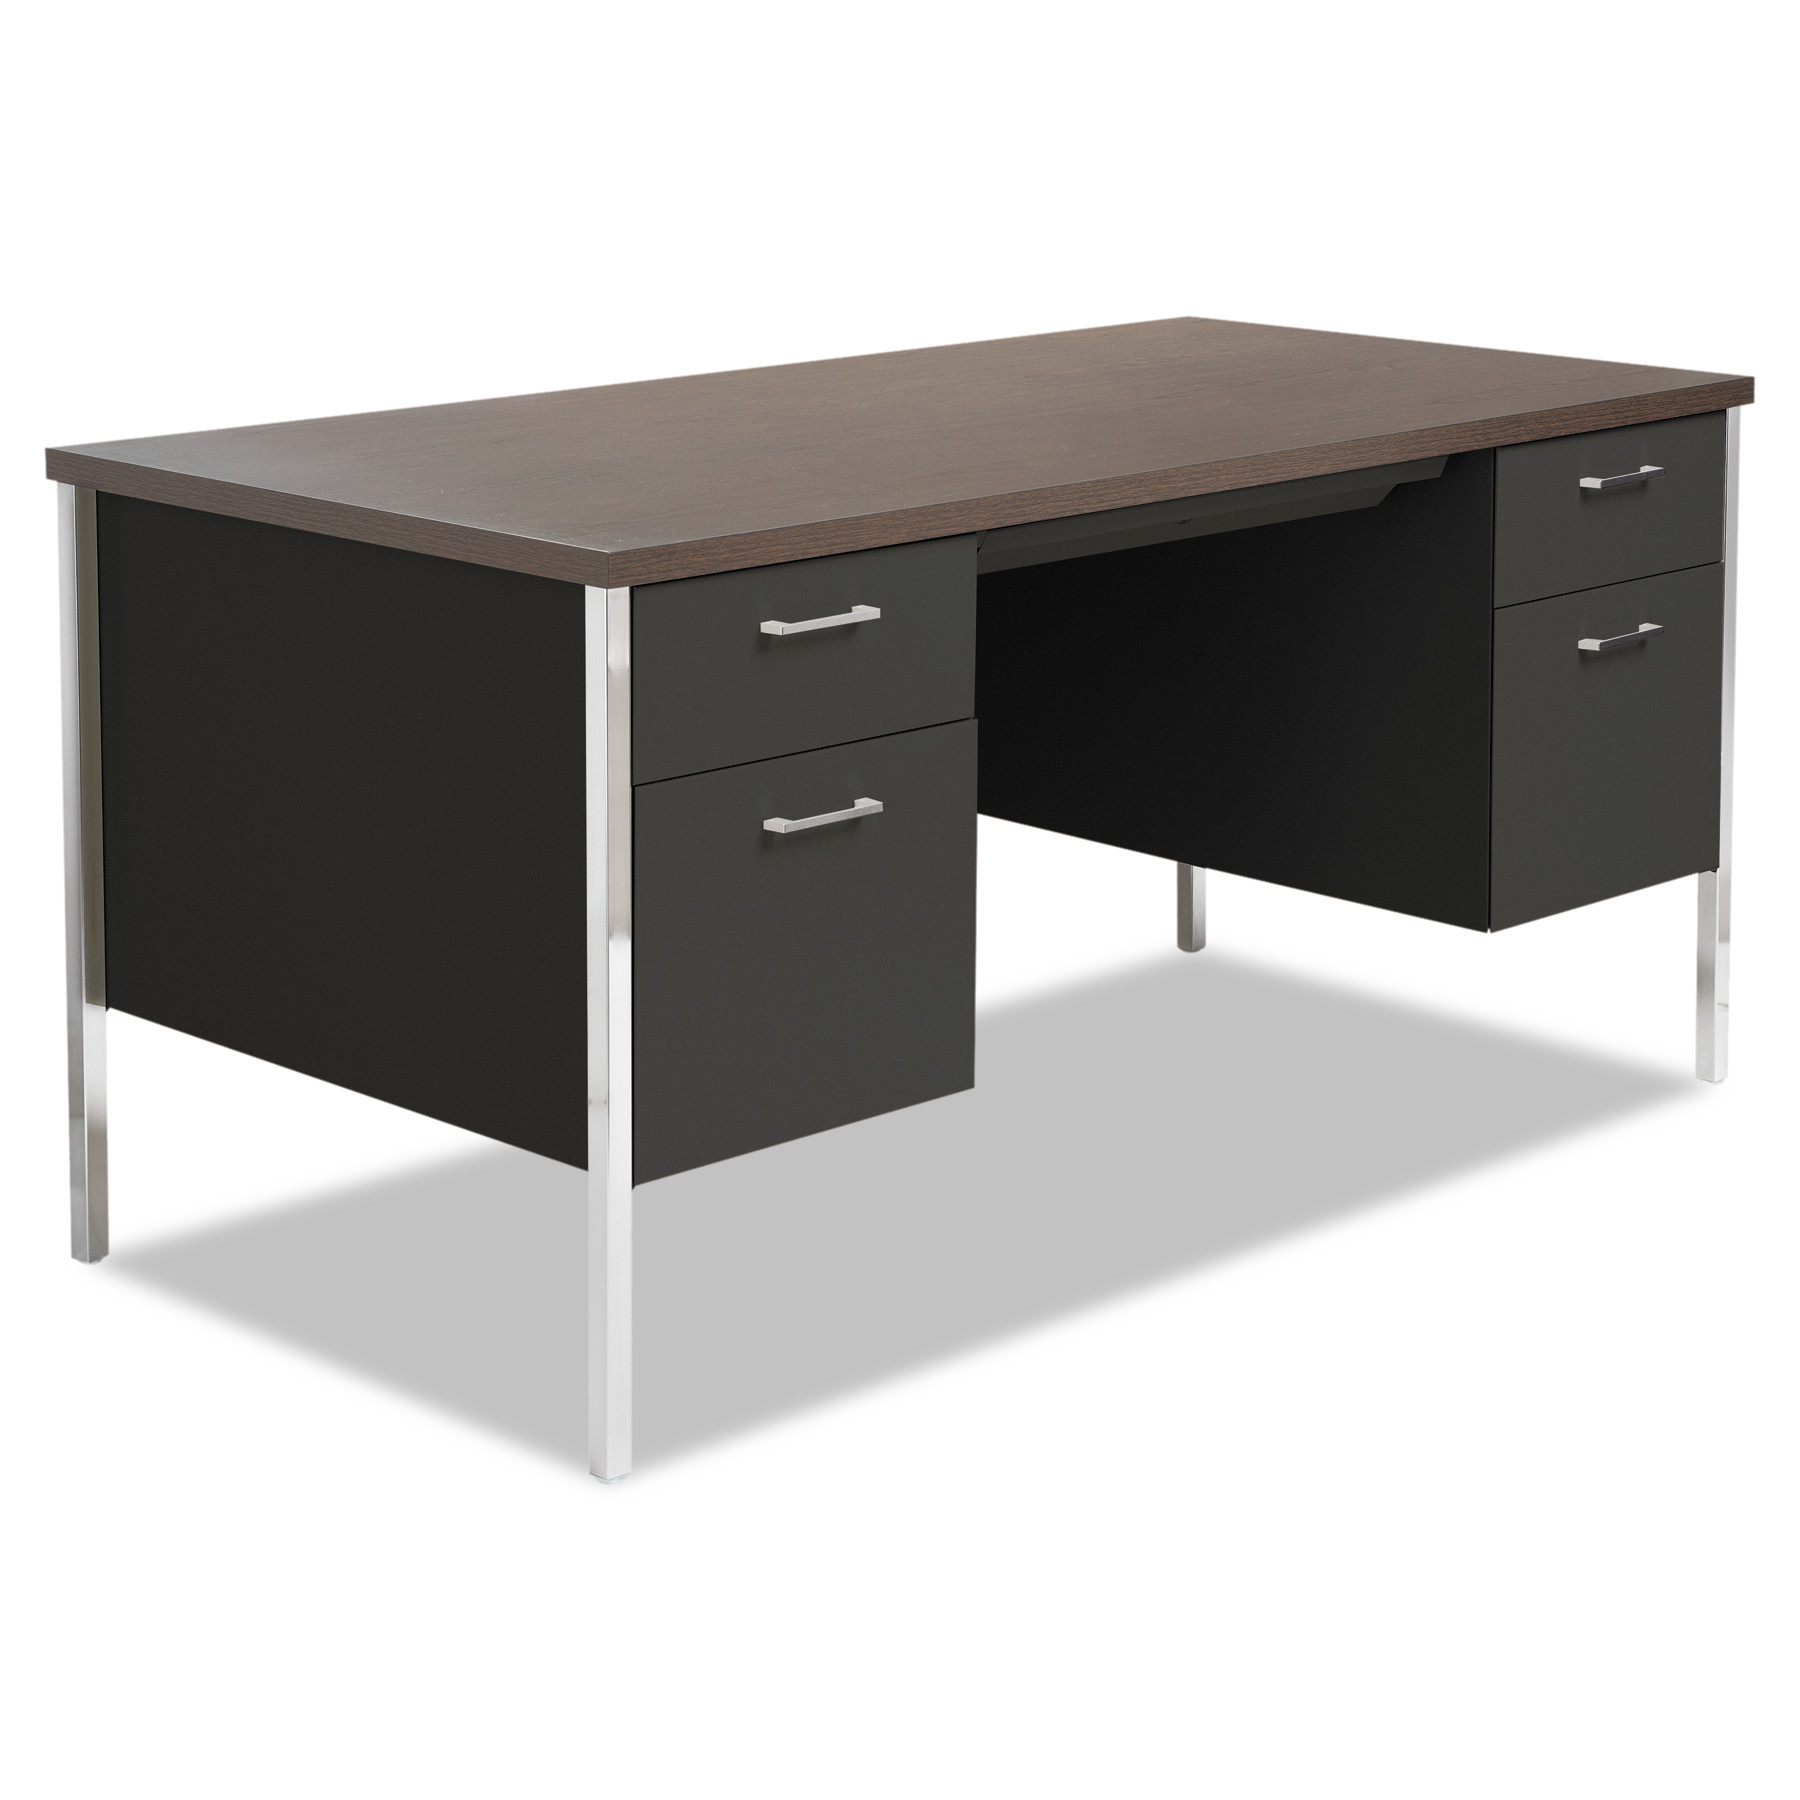 Alera Double Pedestal Steel Desk, Metal Desk, 60w x 30d x 29-1/2h, Walnut/Black